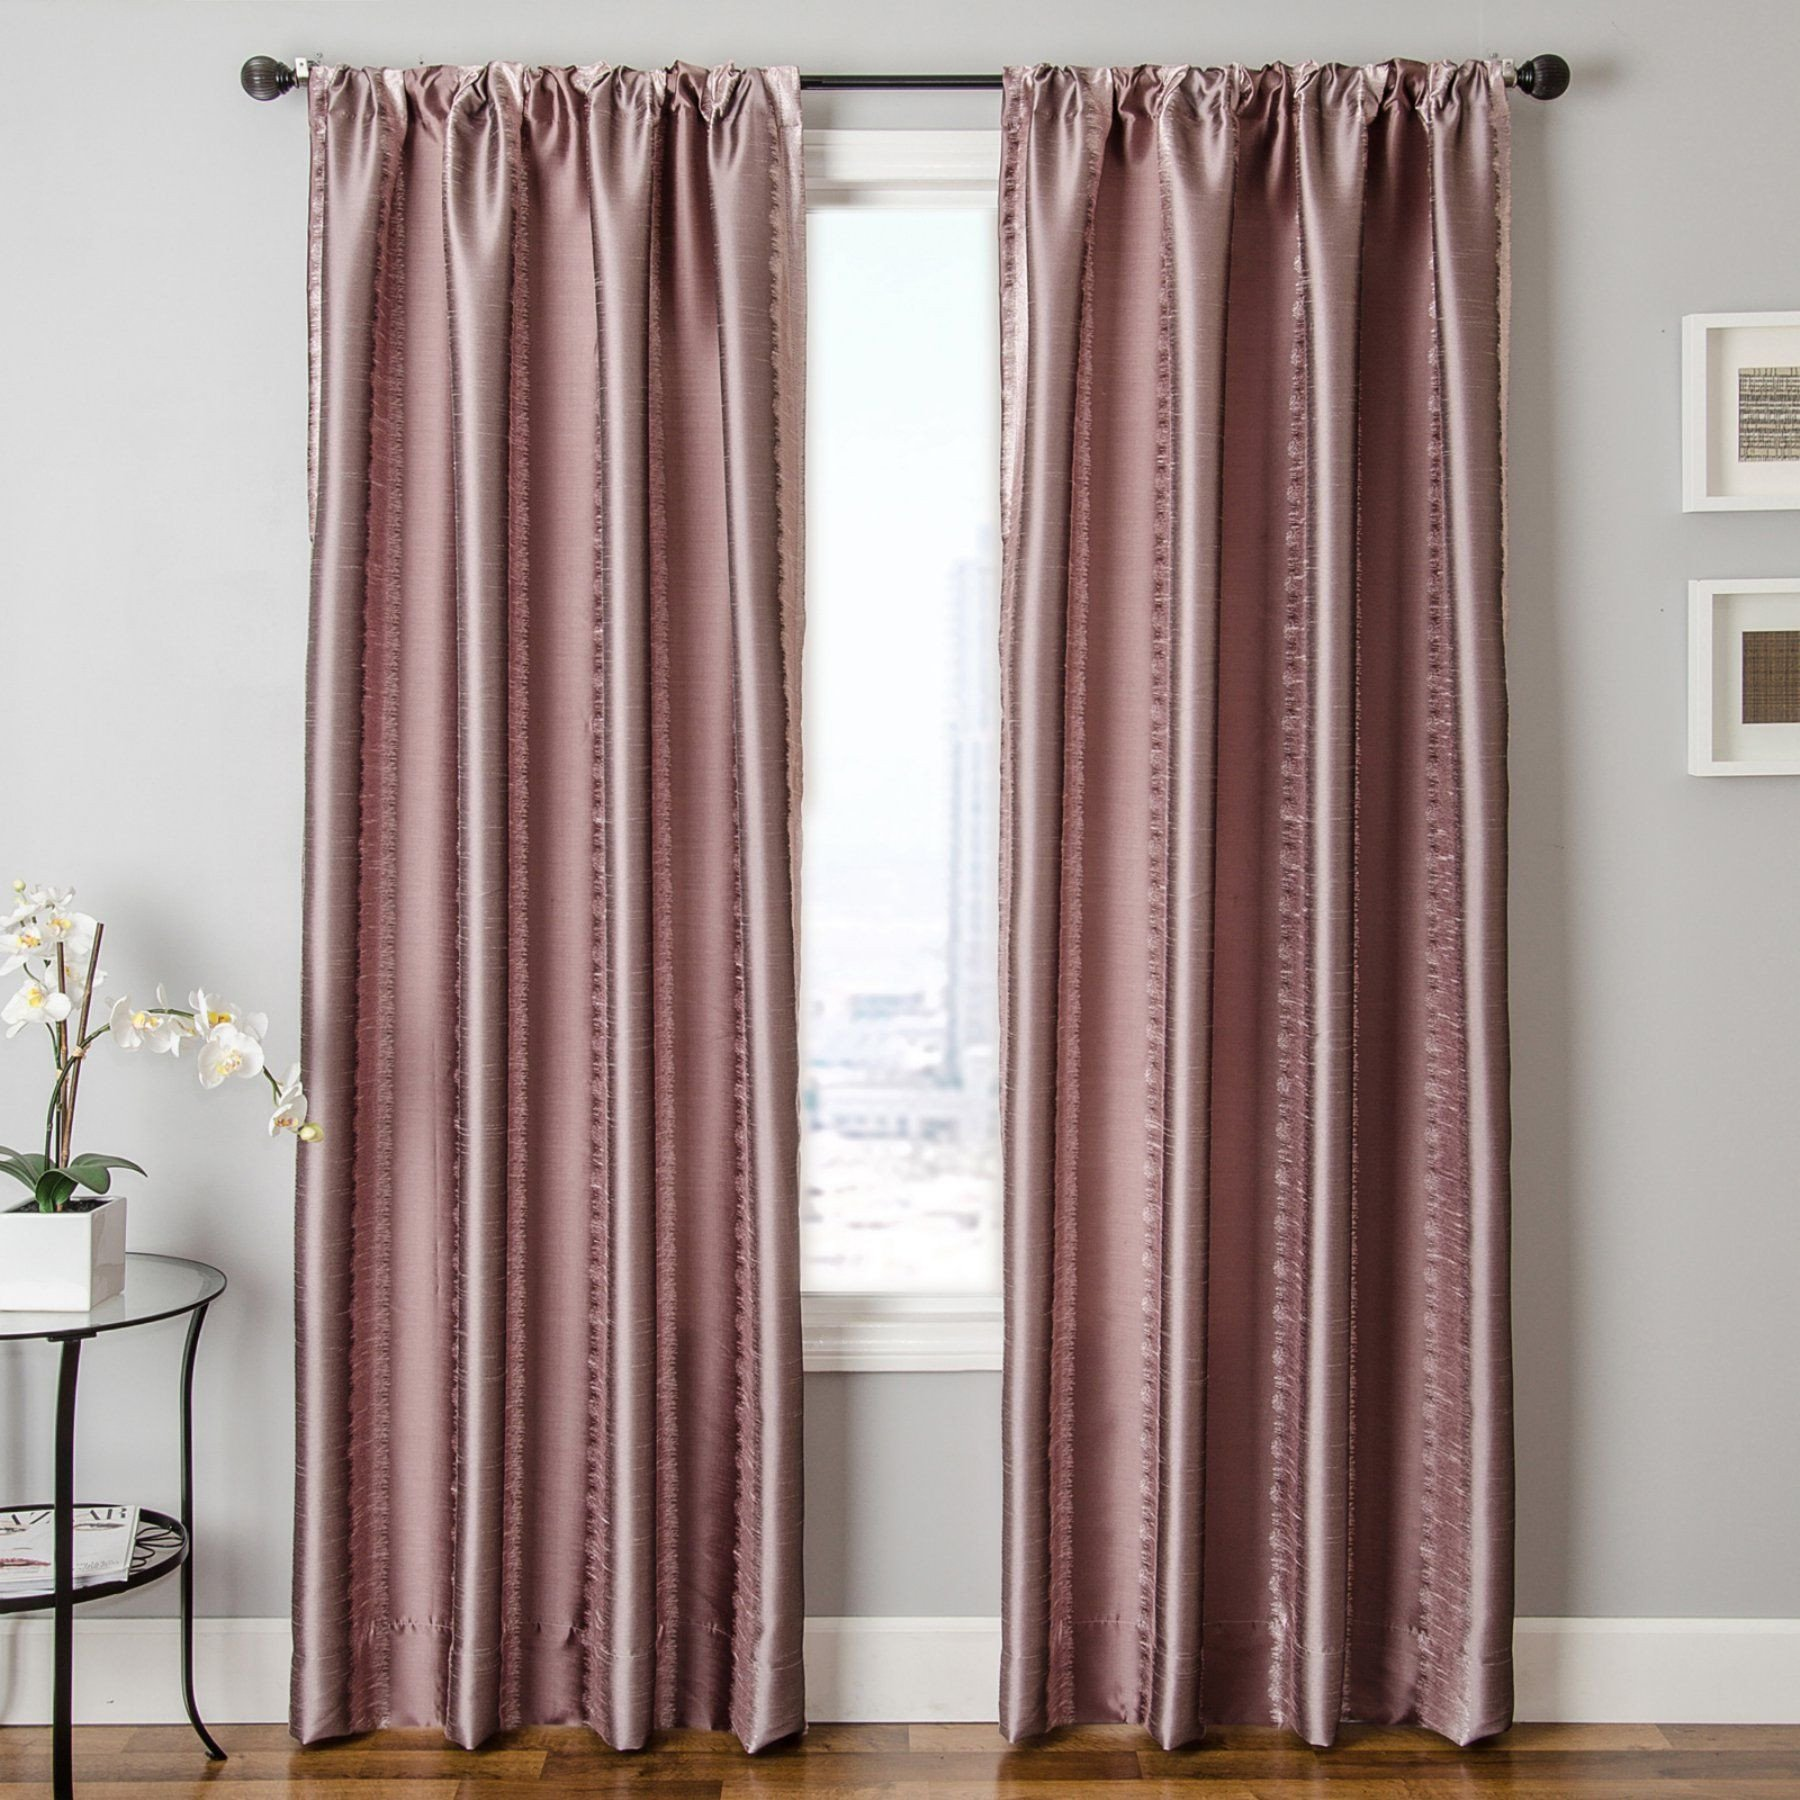 Bedroom Curtains at Walmart Beautiful Fable Rod Pocket Curtain Products